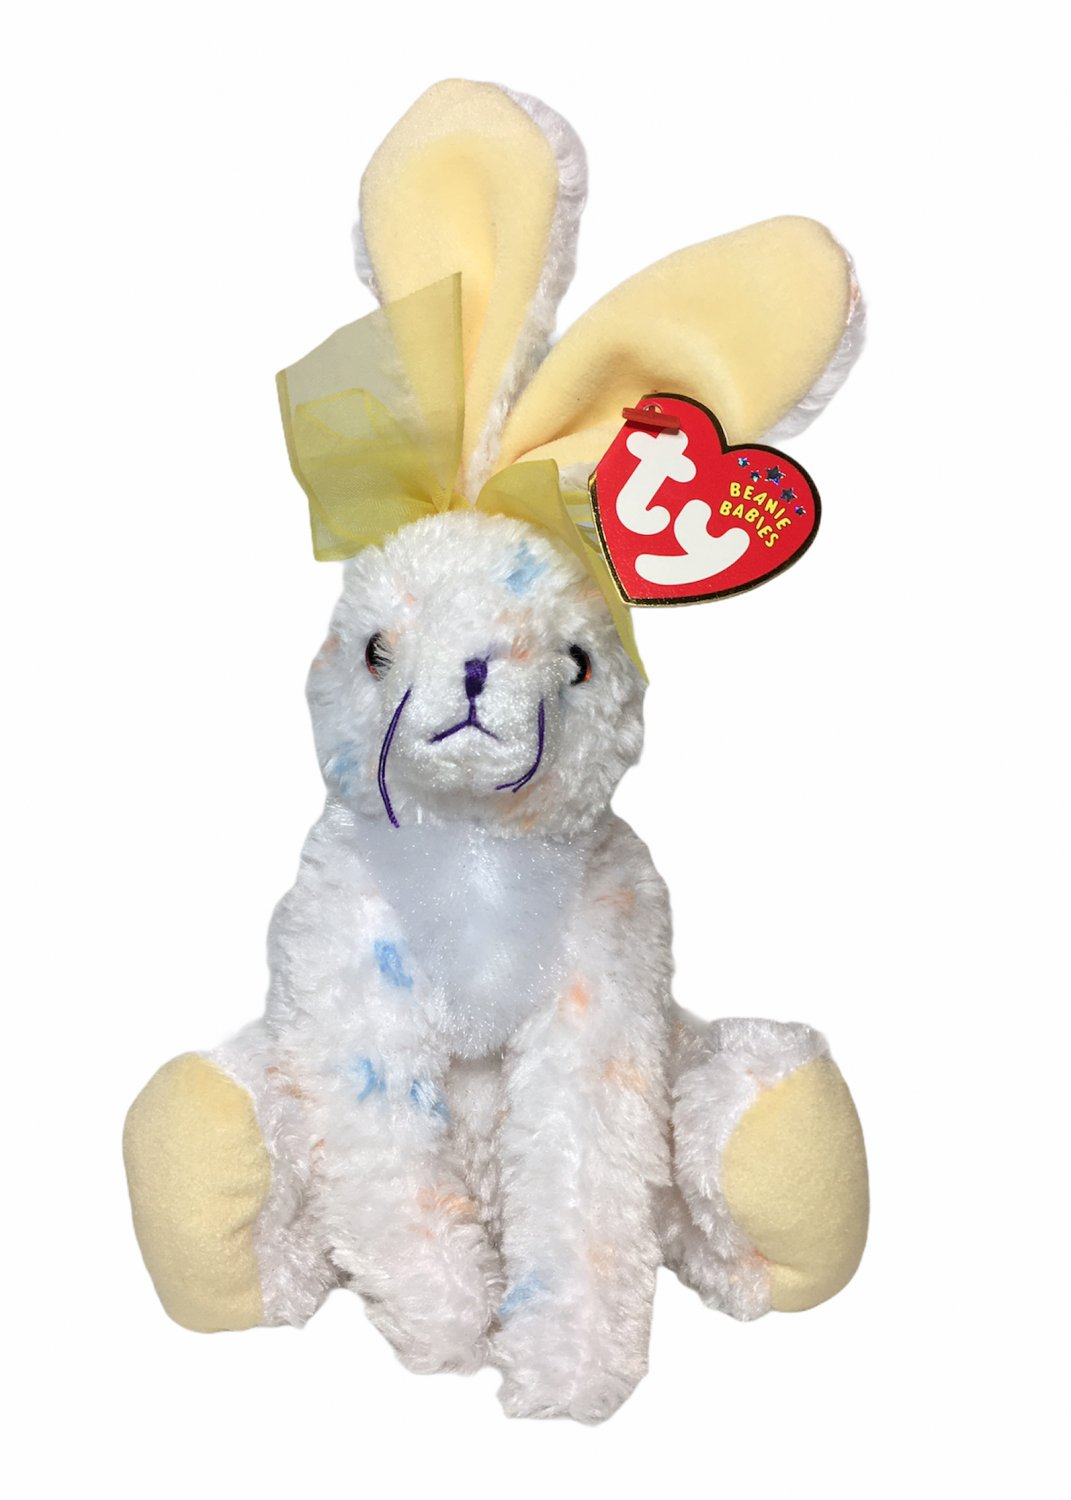 TY Beanie Baby CARROTS Bunny Rabbit Speckled Easter Stuffed Plush 2001 Toy TAG